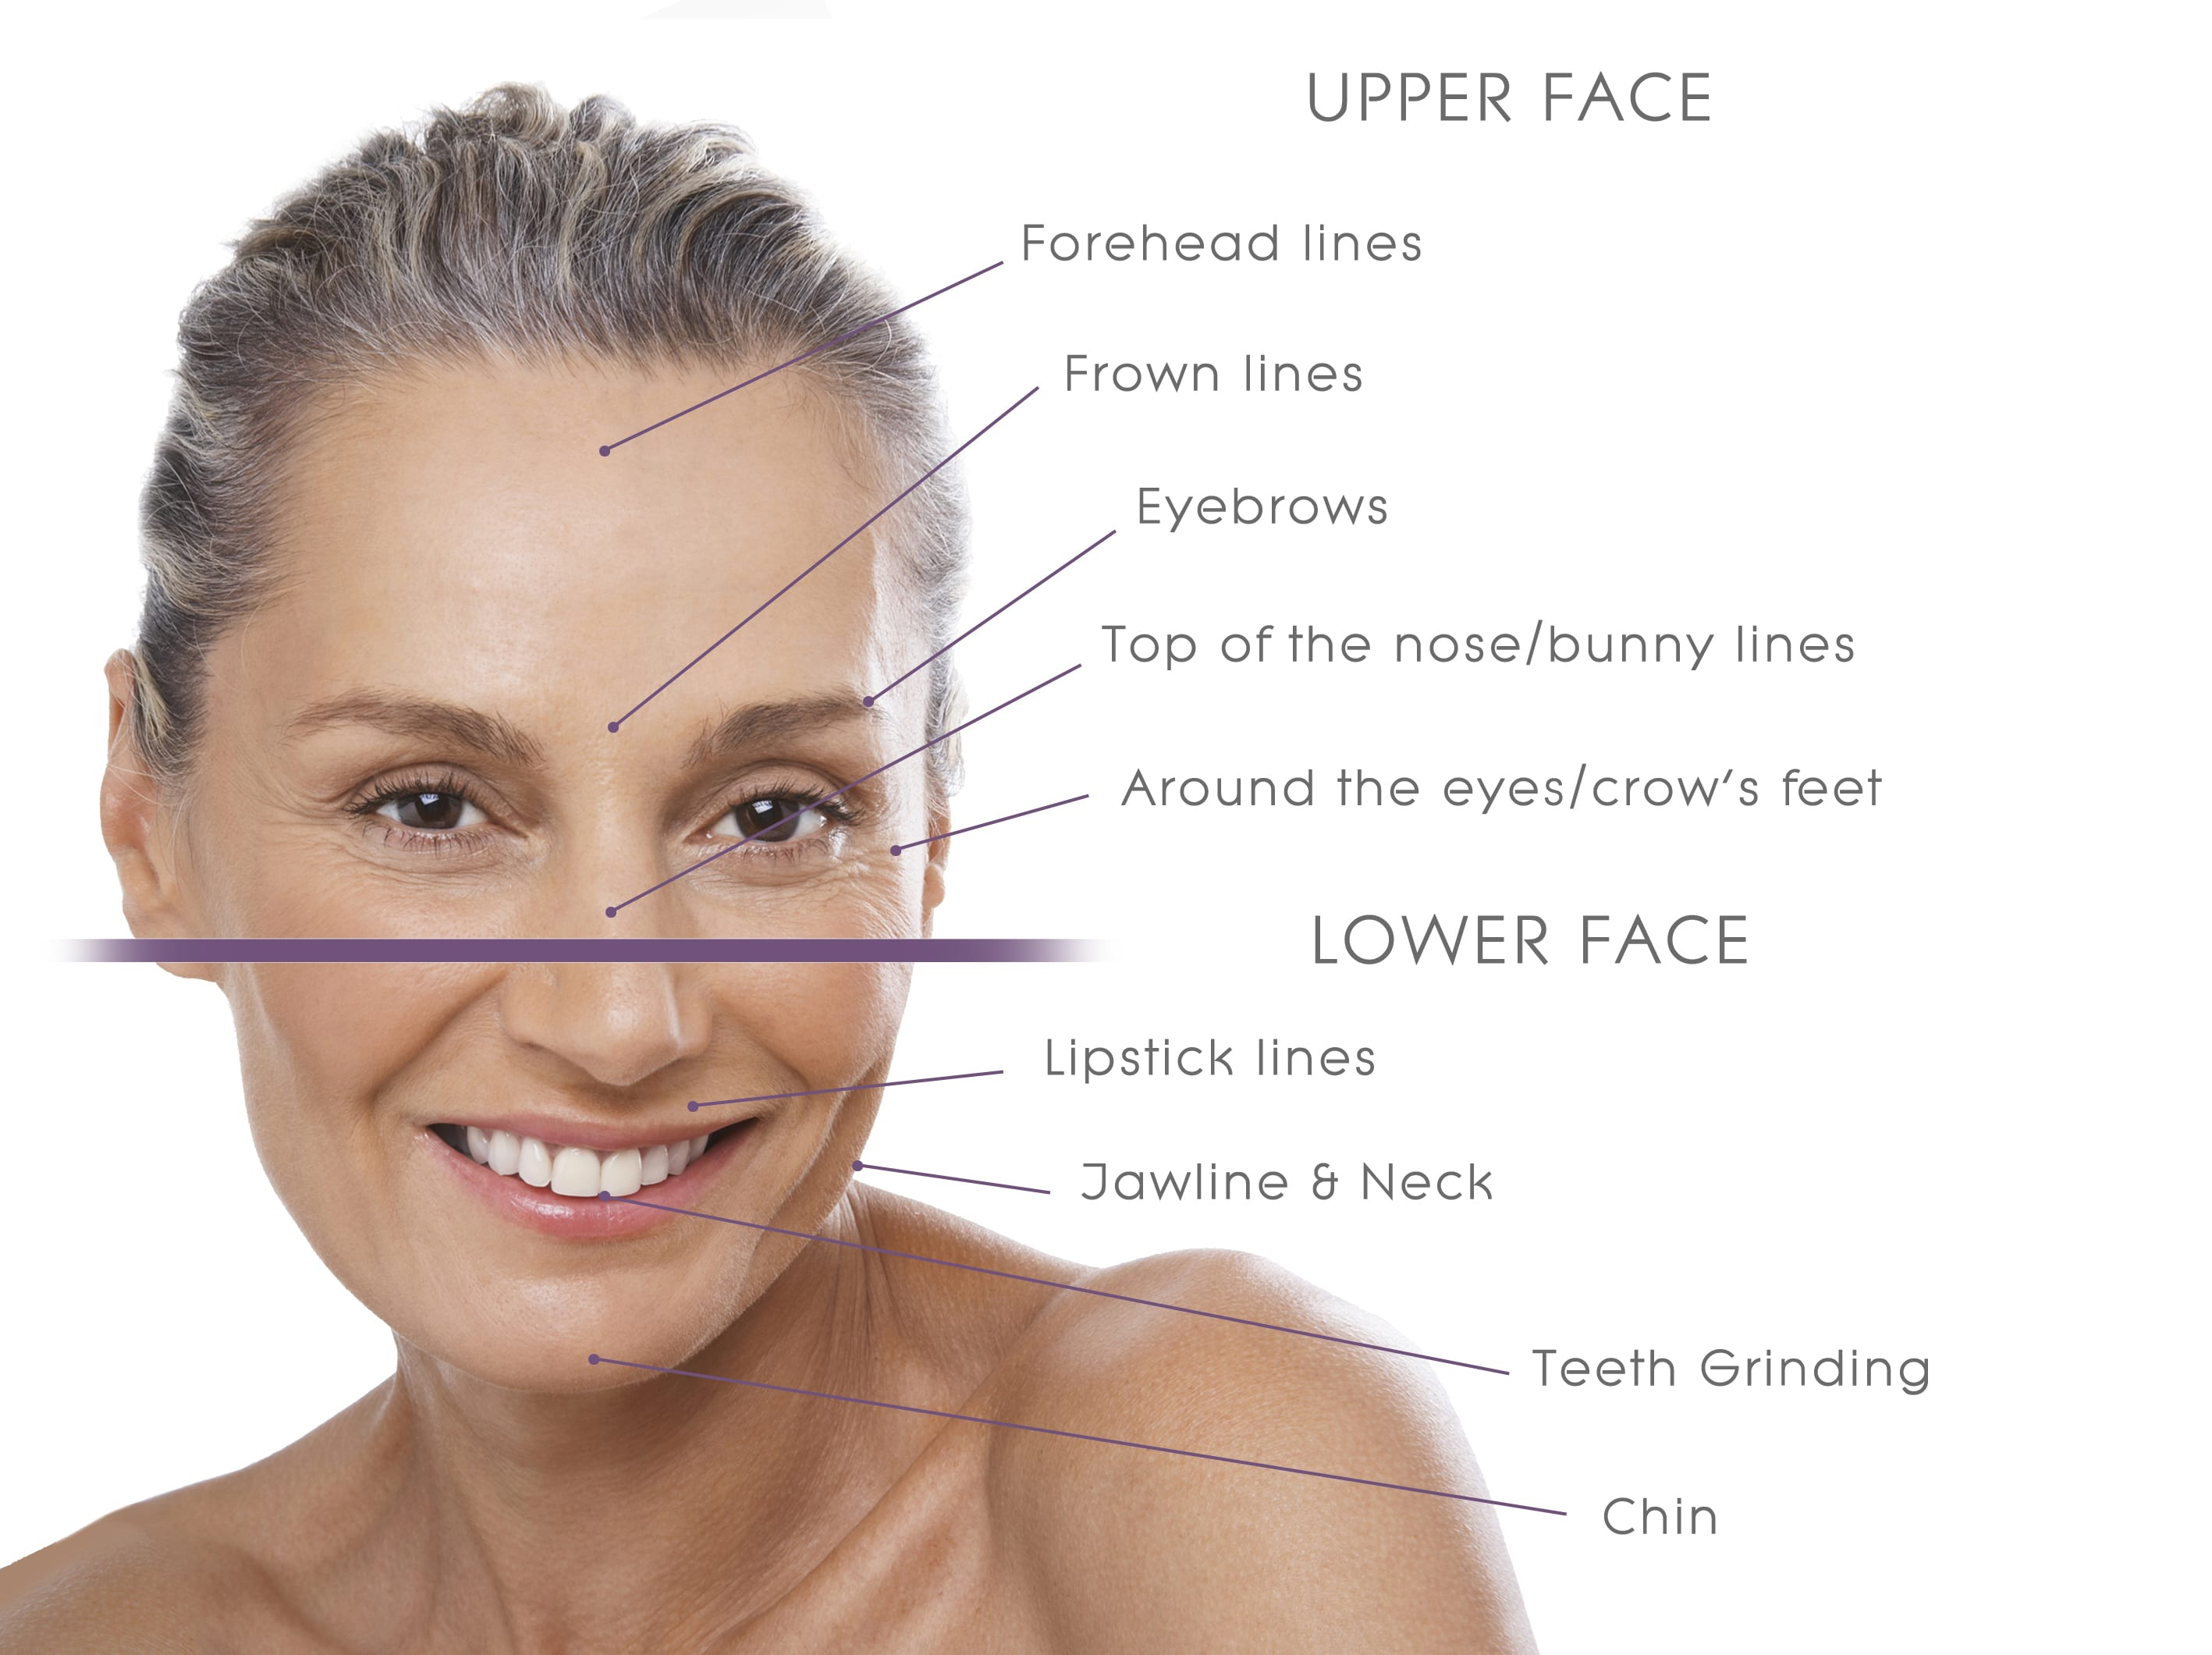 Where On The Face Can Botox Be Injected